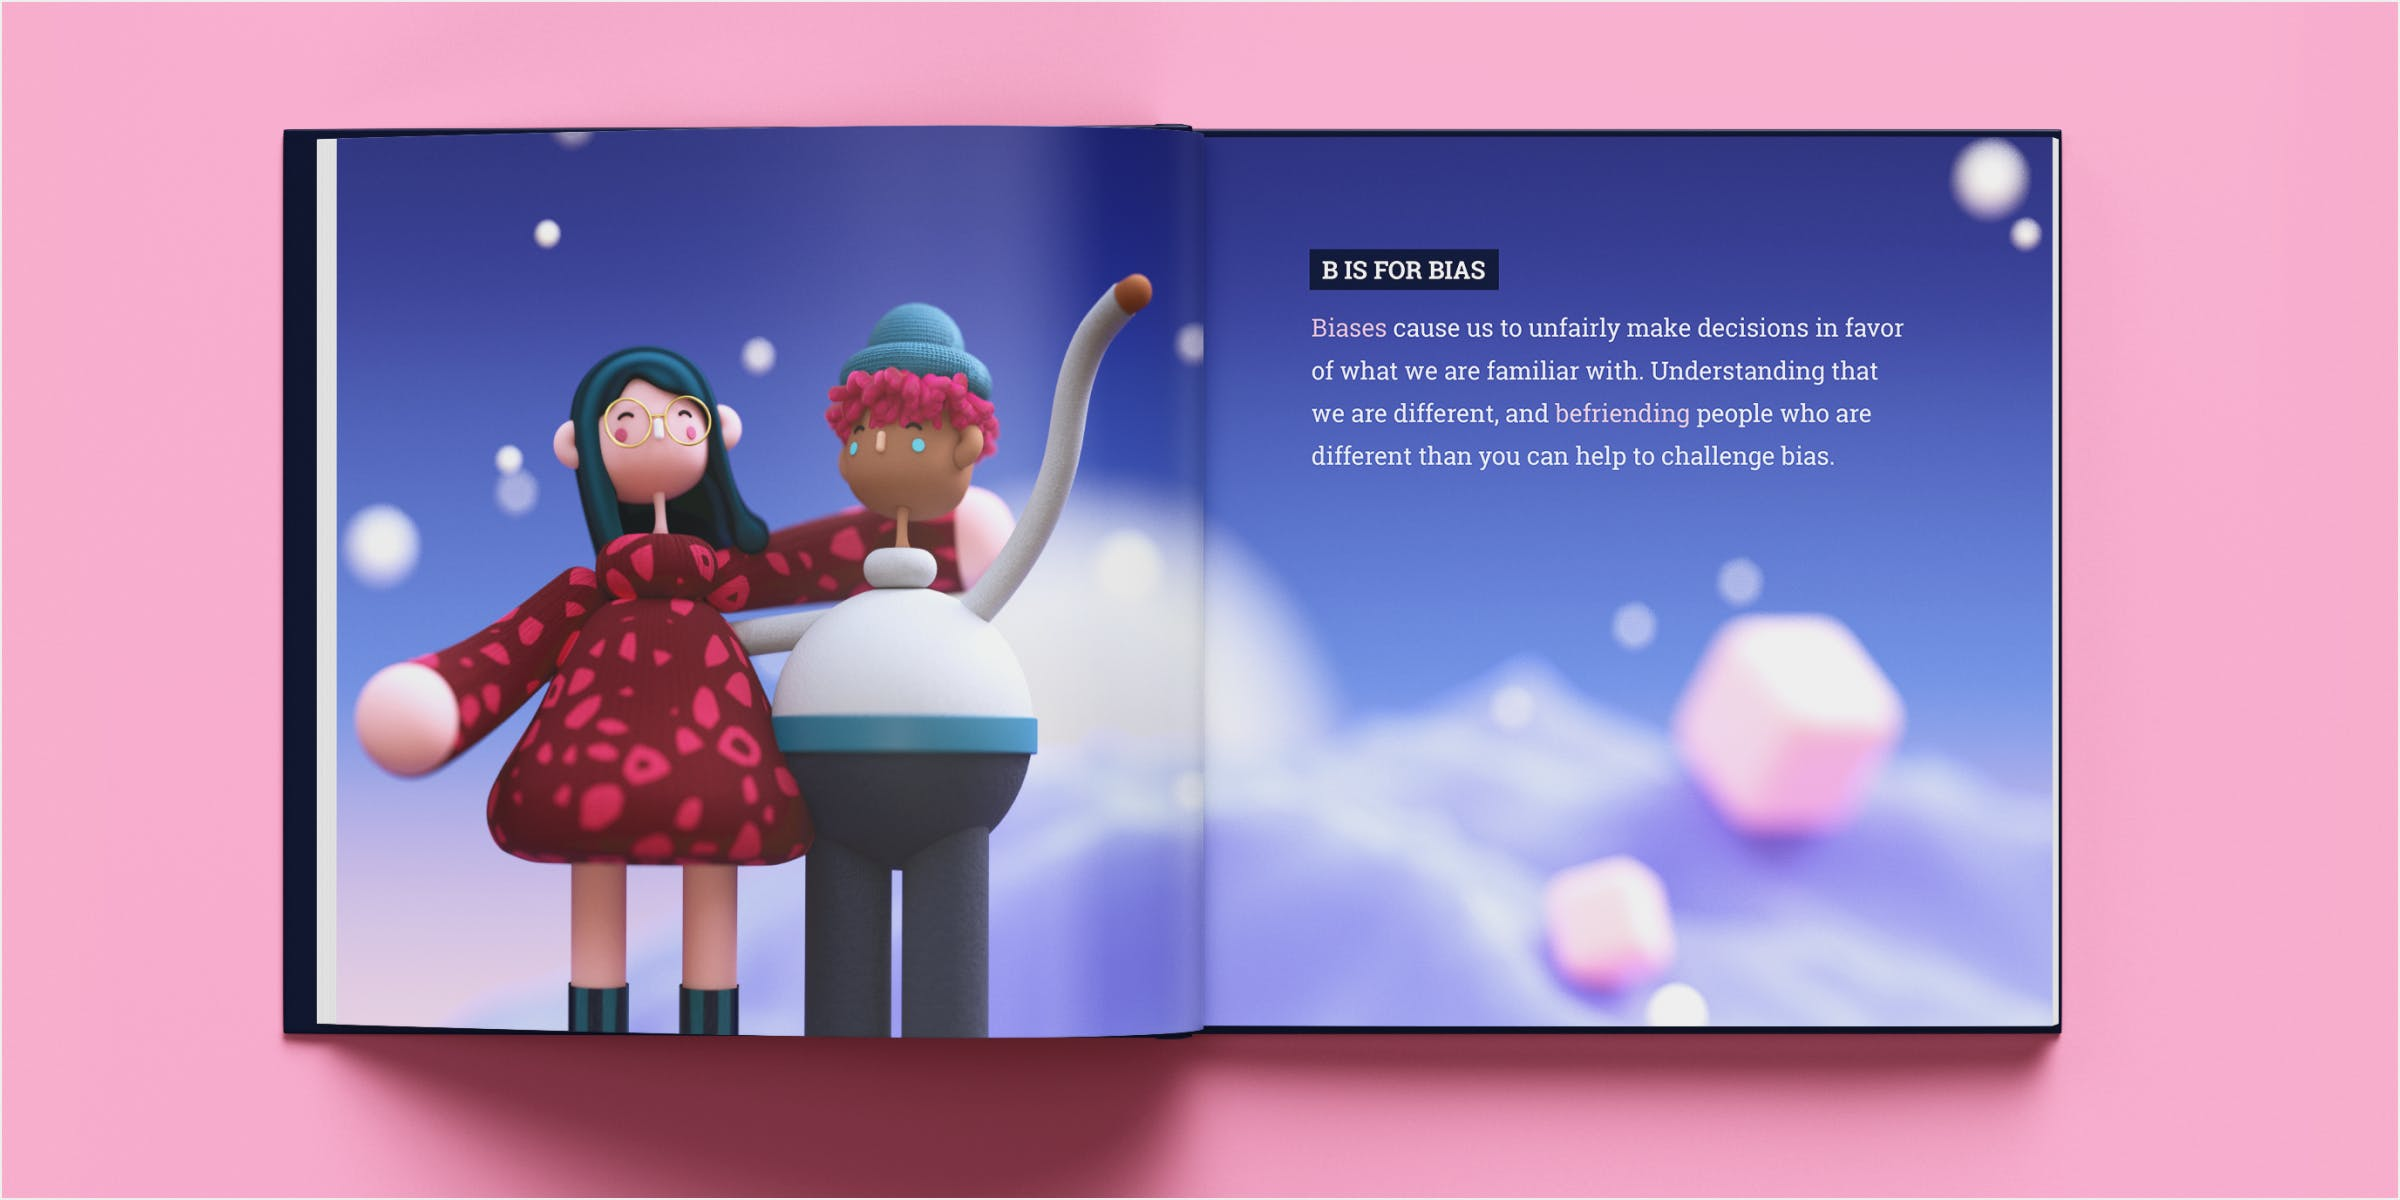 Mockup of bias spread in a book. Two happy 3D characters are arm in arm.